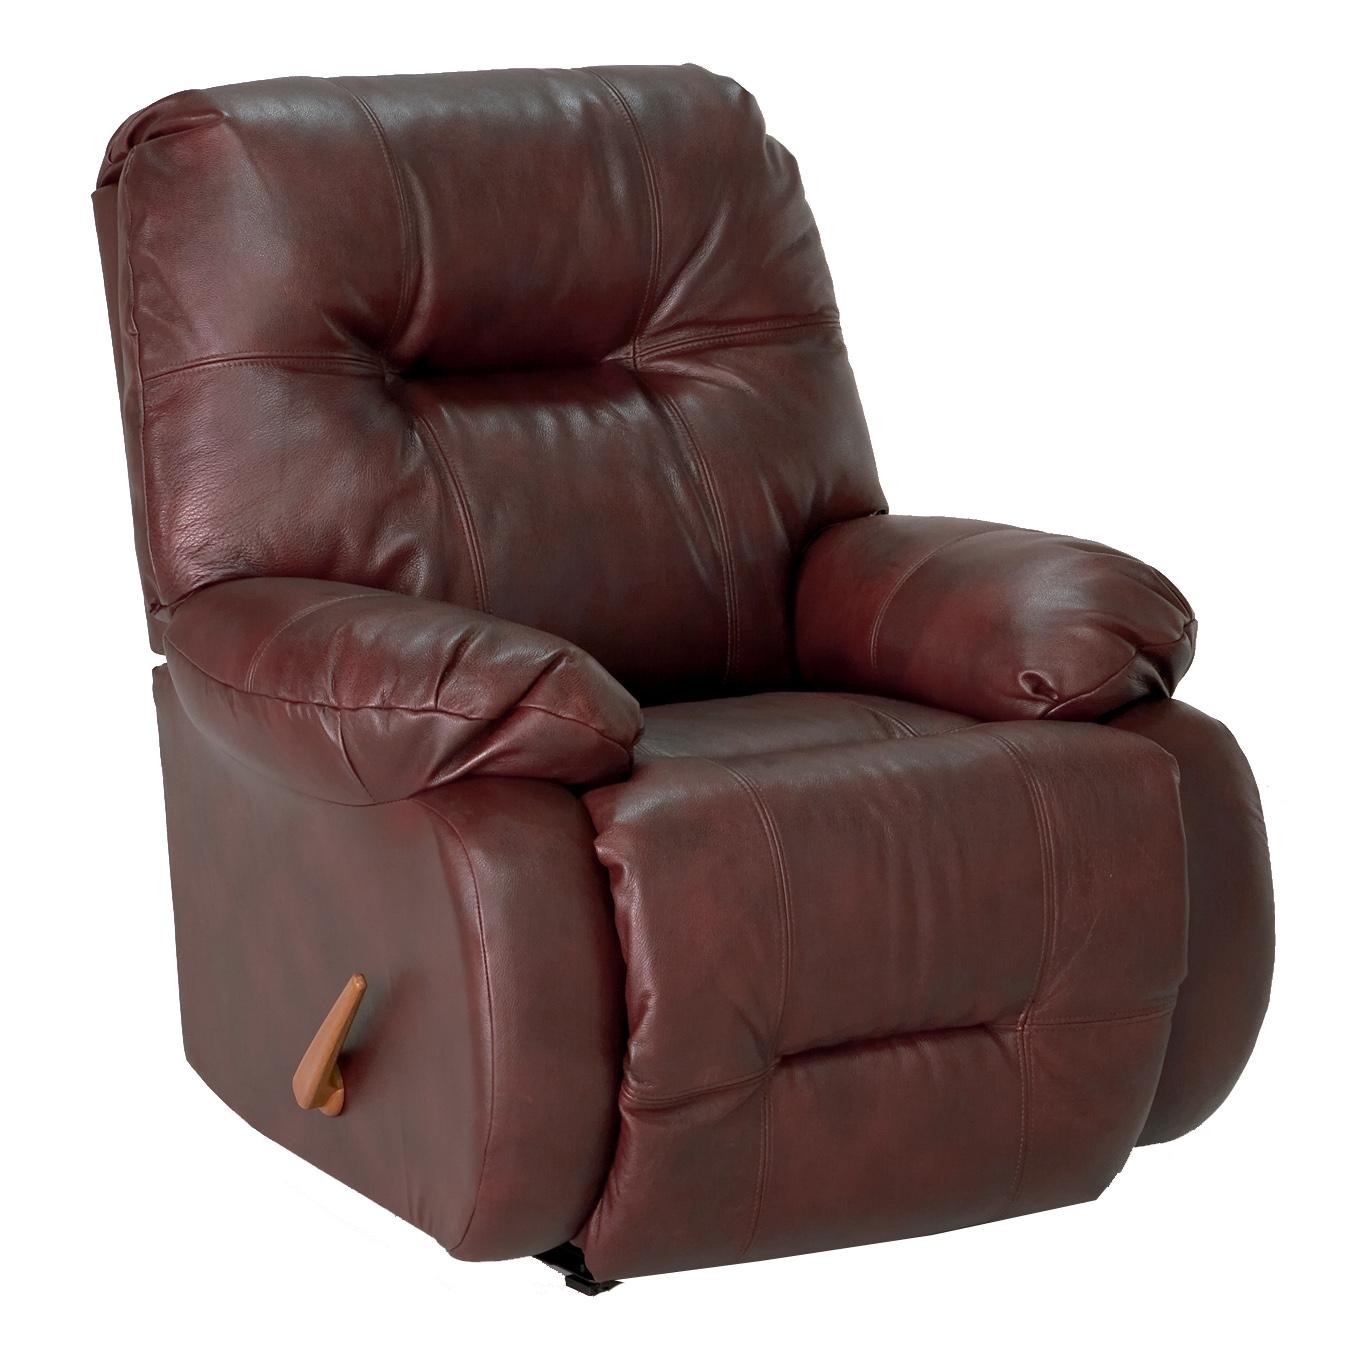 Medium Recliners Power Swivel Glide Recliner by Best Home Furnishings at Baer's Furniture